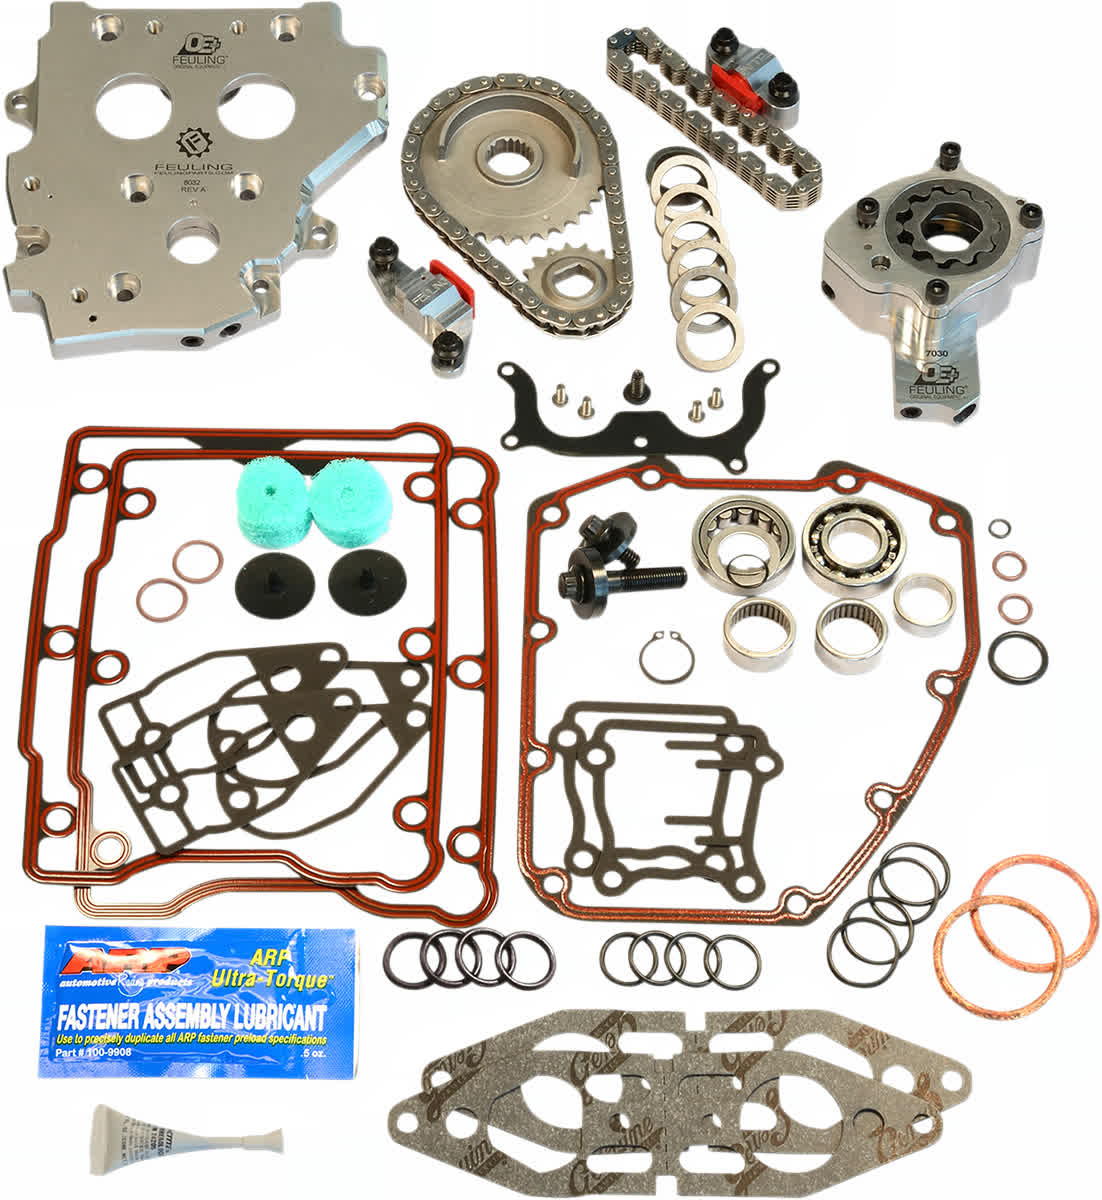 Feuling 7089 OE Hydraulic Cam Chain Tensioner Conversion Kit 99-01